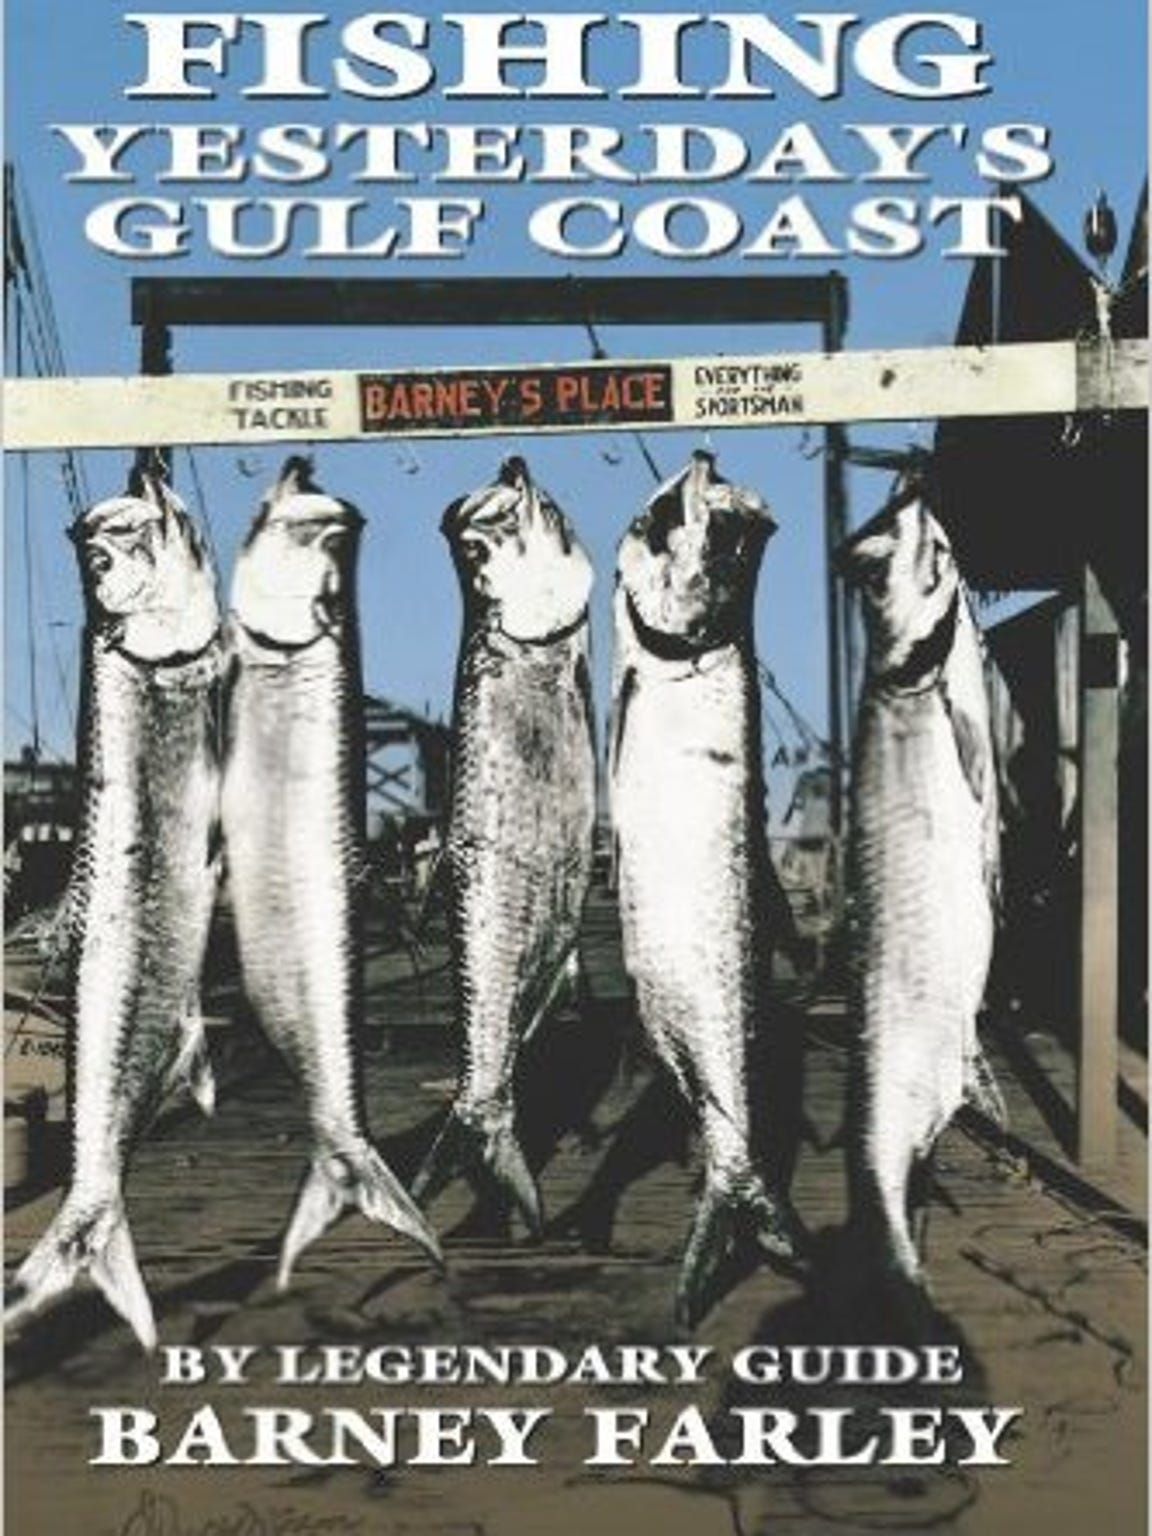 Fishing Yesterday's Gulf Coast by Barney Farley reminds